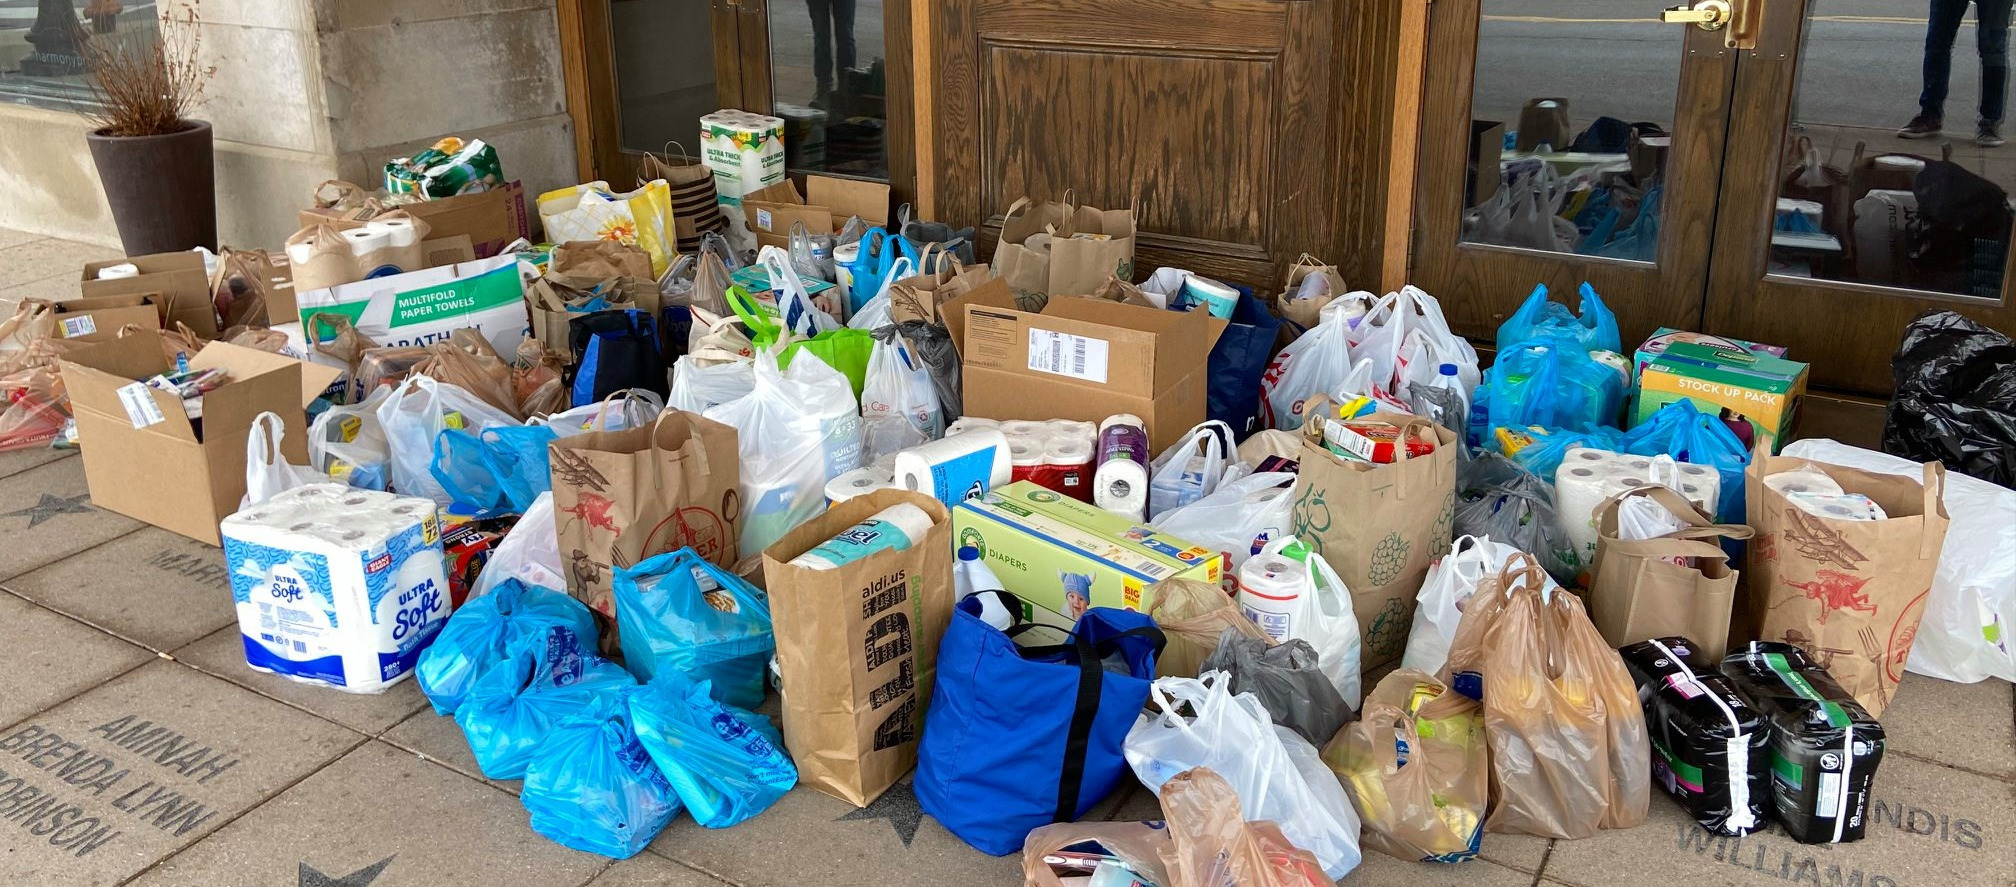 Food and material donation drop-off for COVID-19 emergency response by Community Shelter Board